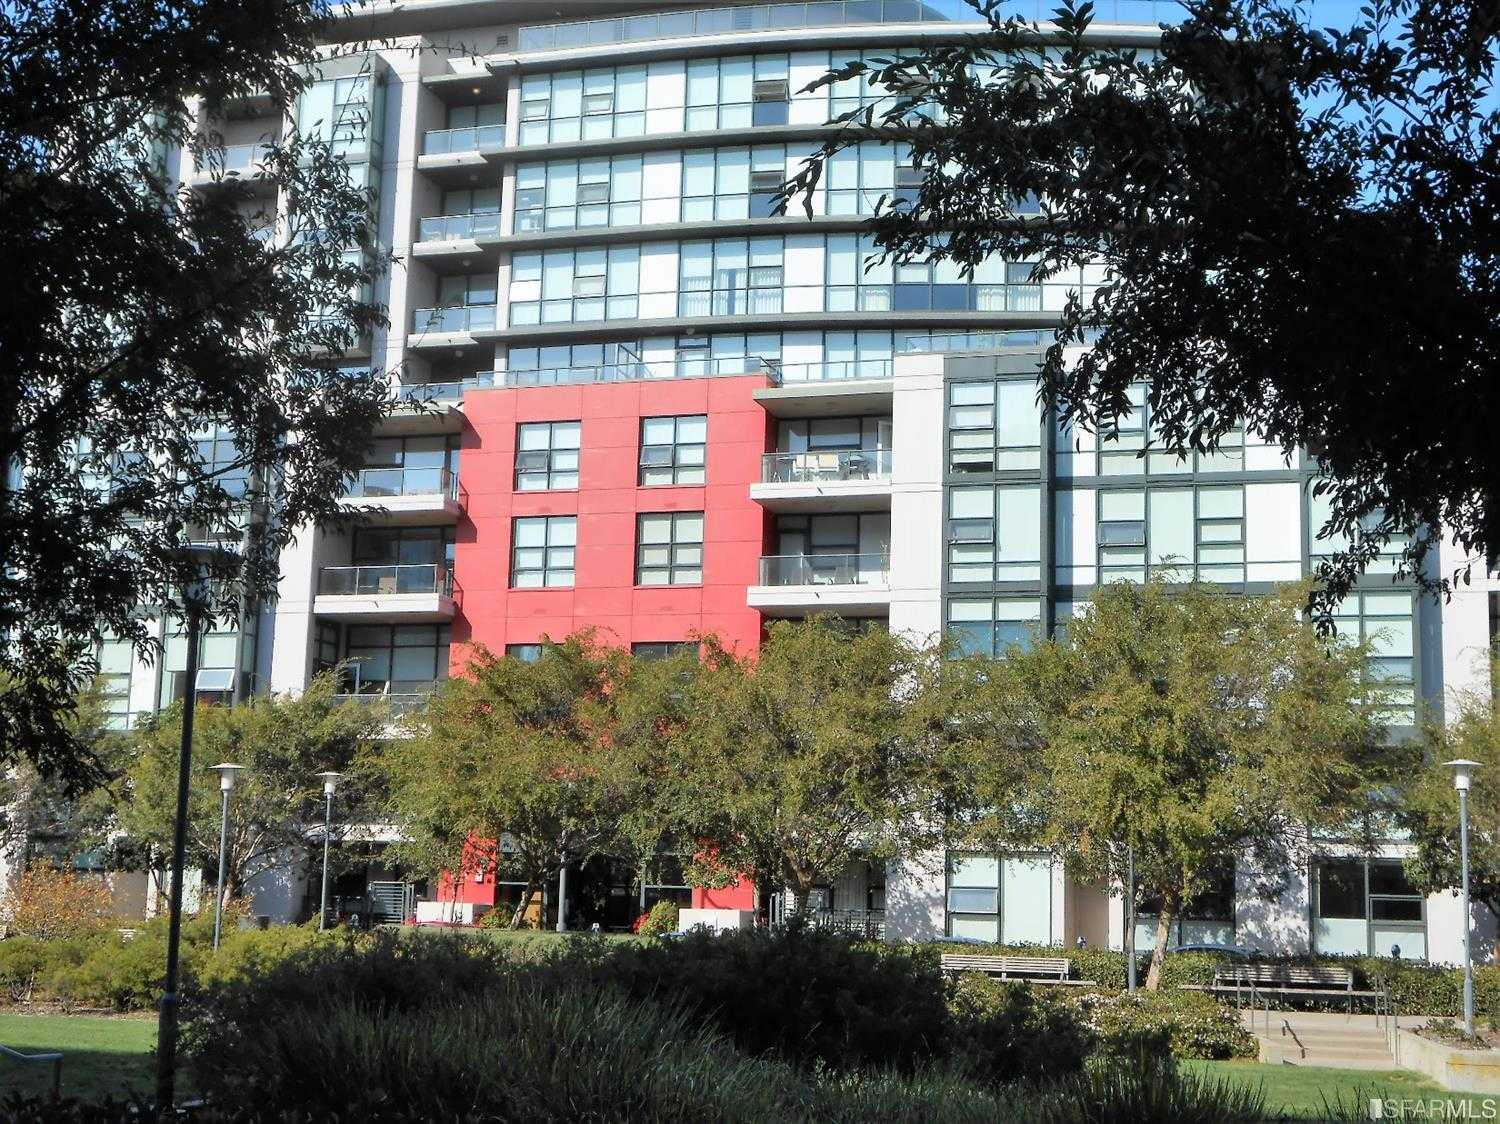 330 Mission Bay Blvd N Unit 805 San Francisco, CA 94158